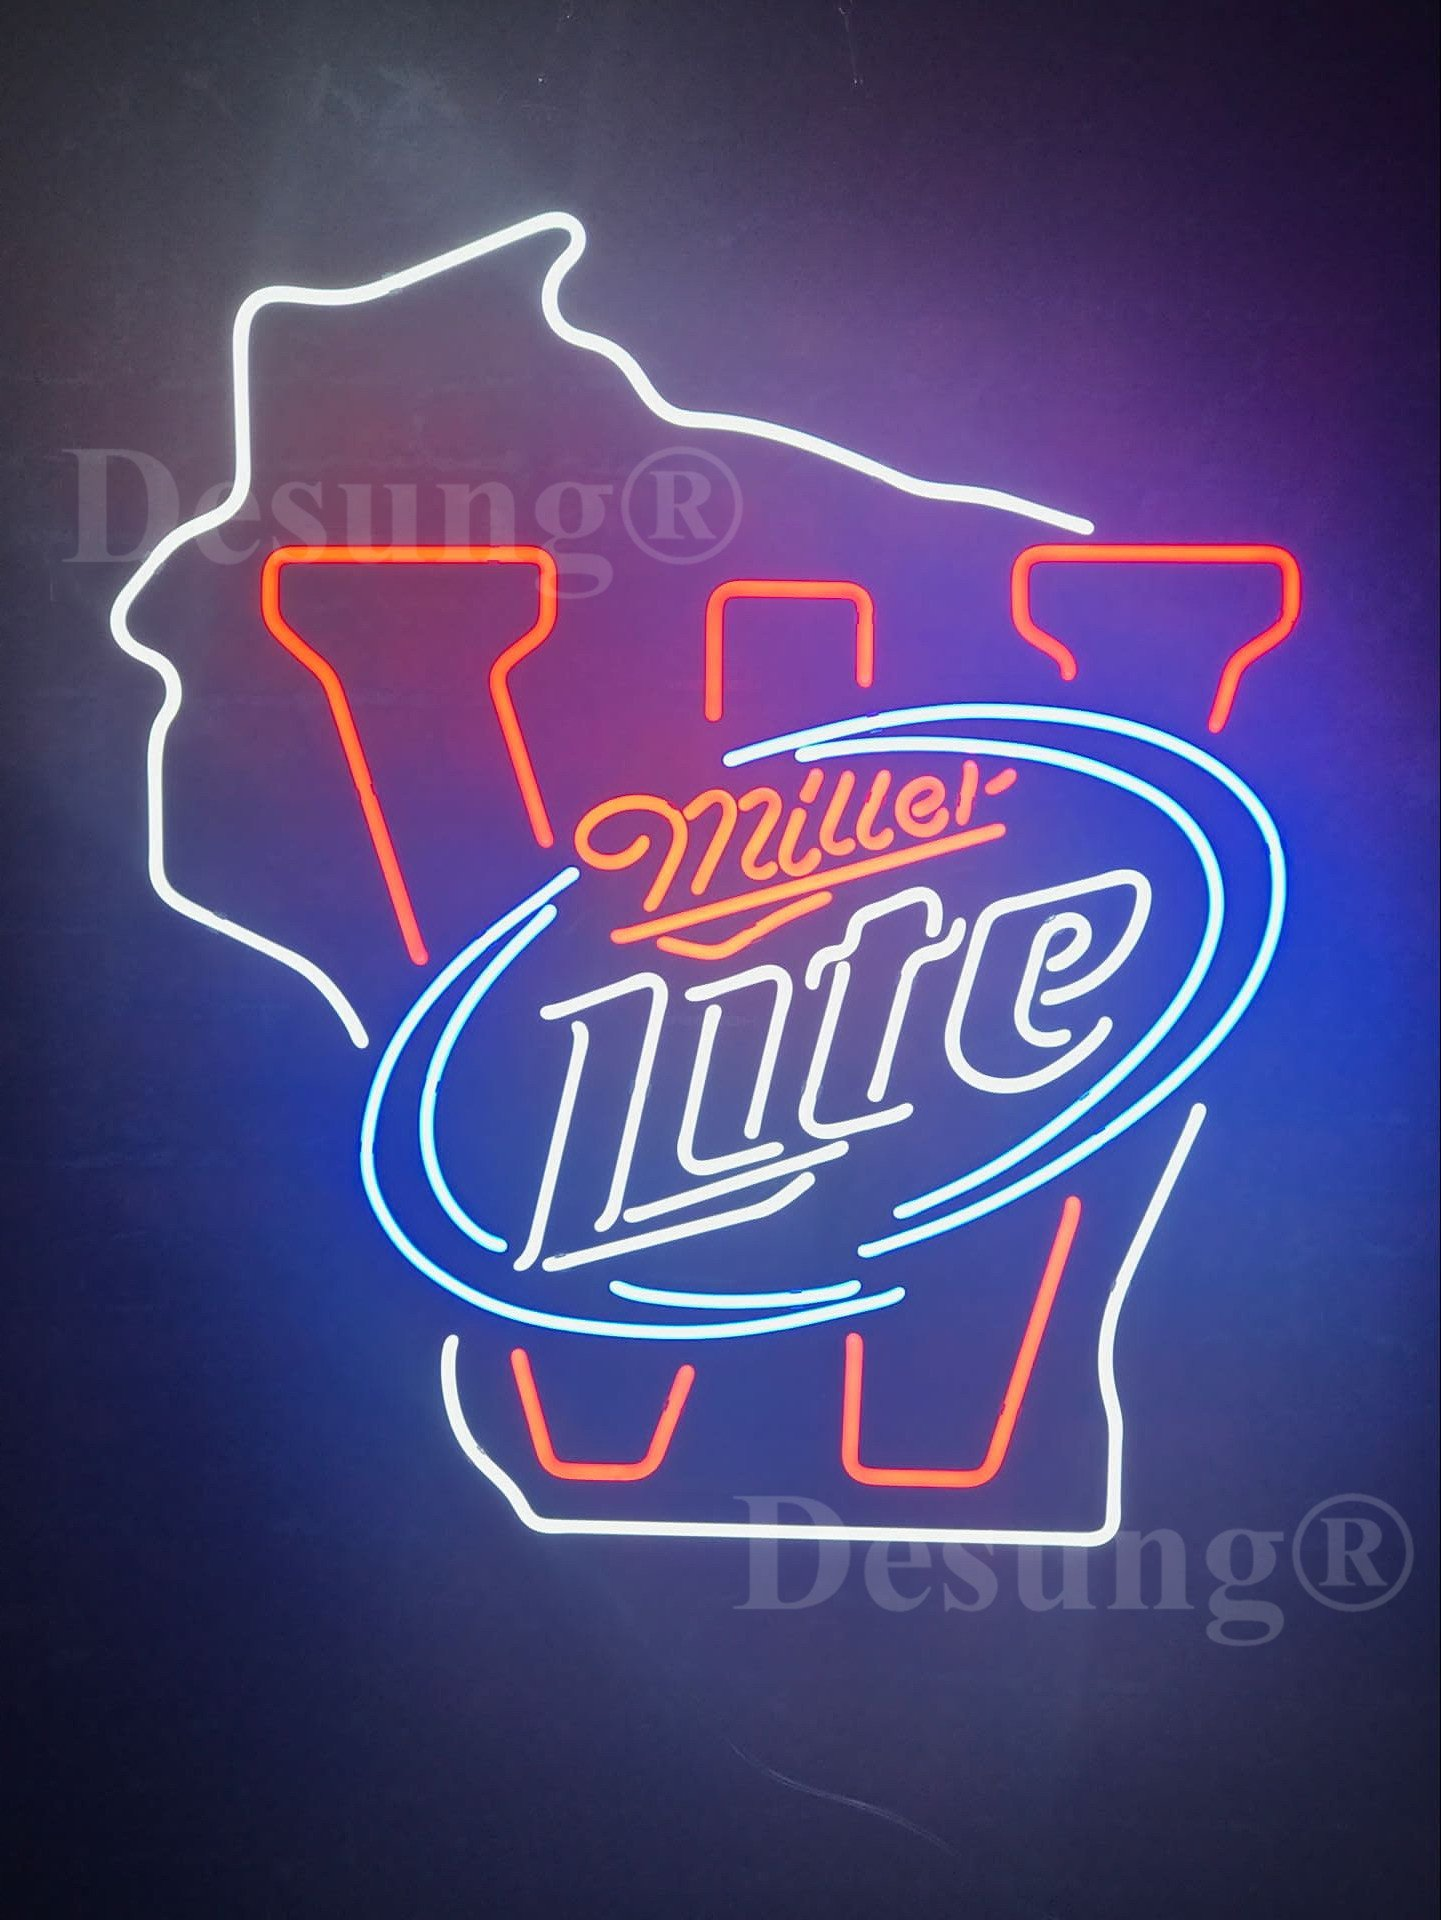 Desung New 24''x20'' Sports WB Team M-Lite Beer Neon Sign Man Cave Signs Sports Bar Pub Beer Neon Lights Lamp Glass Neon Light DX67